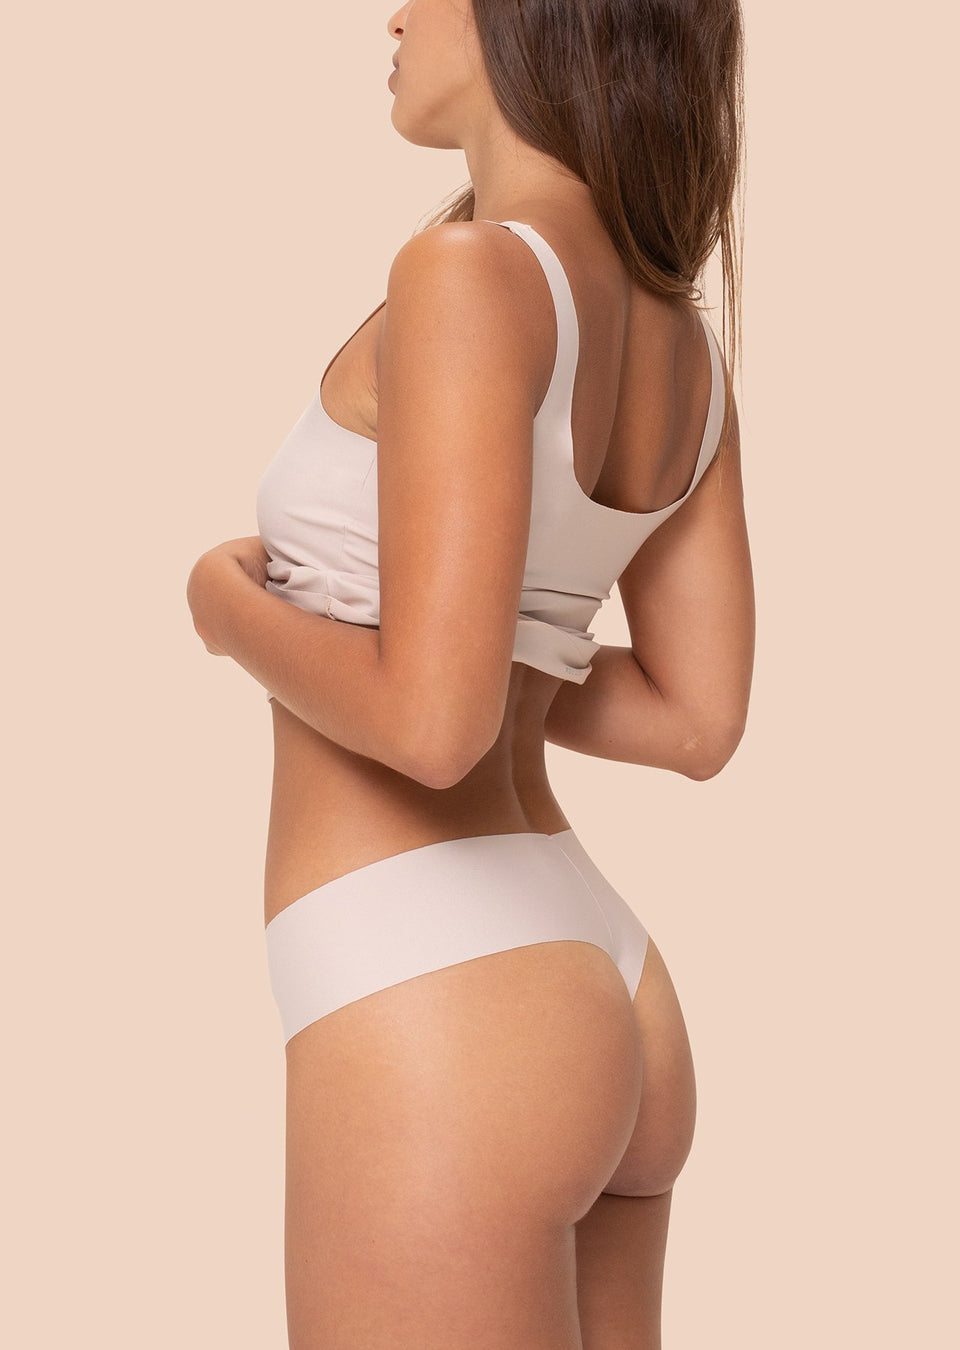 Organic Basics Invisible Cheeky Thong 4-pack